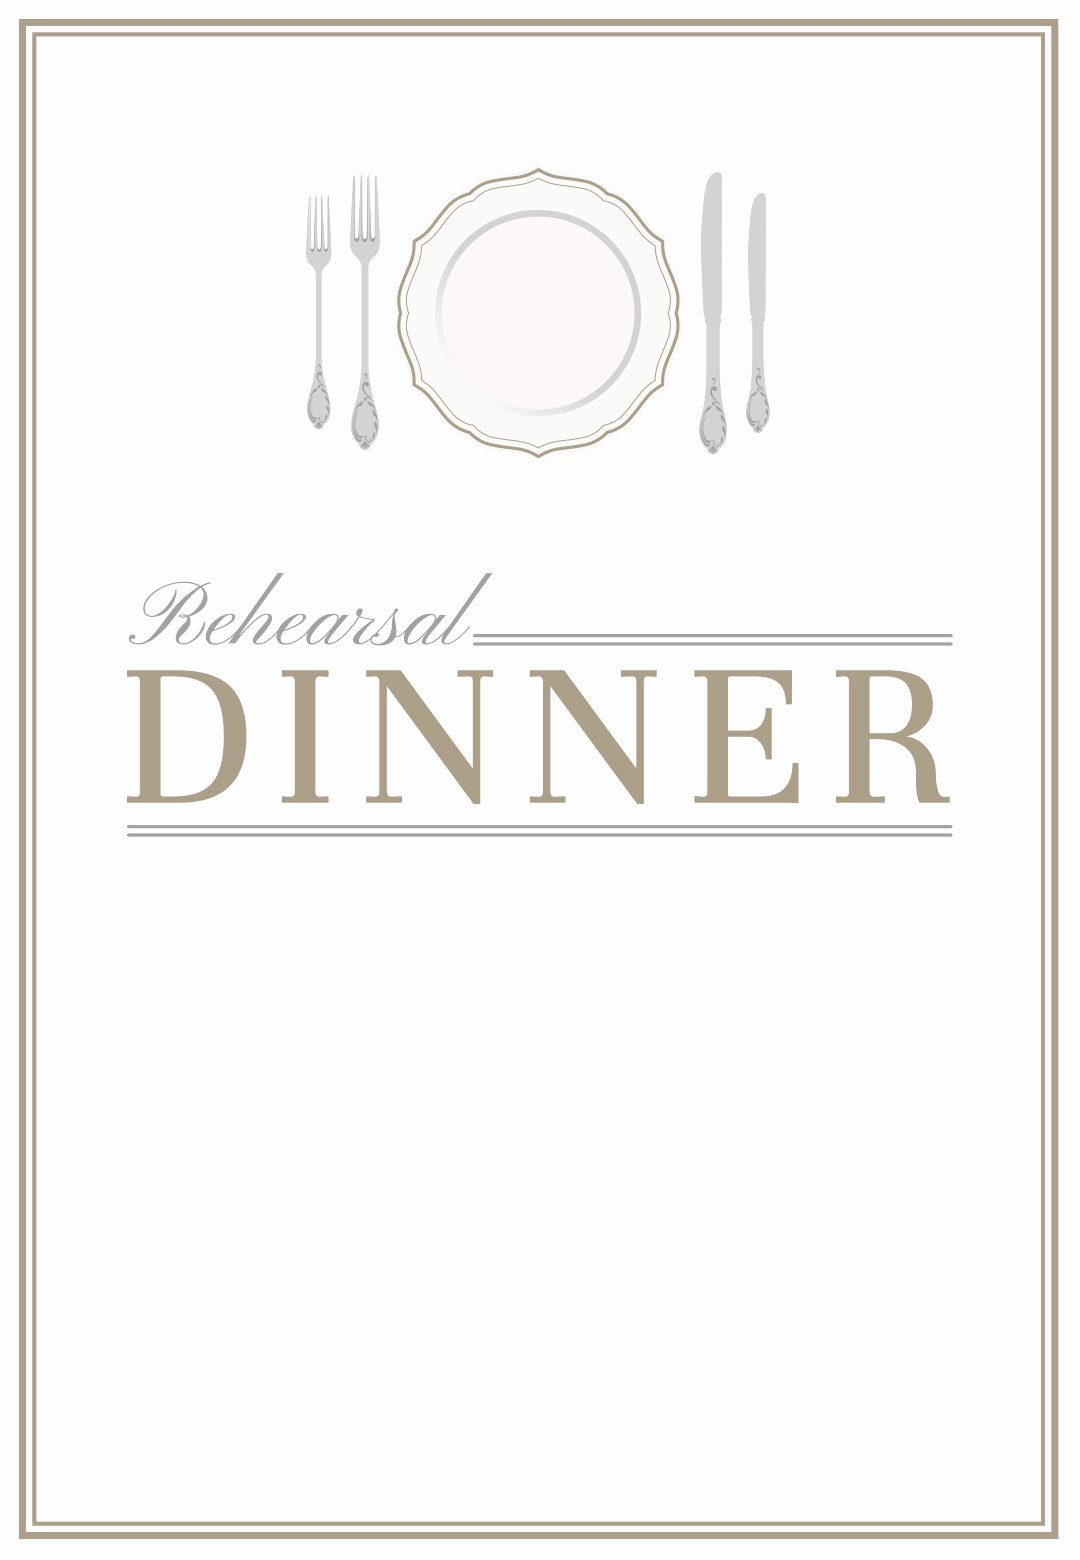 Dinner Invitation Templates Free Printable Templates